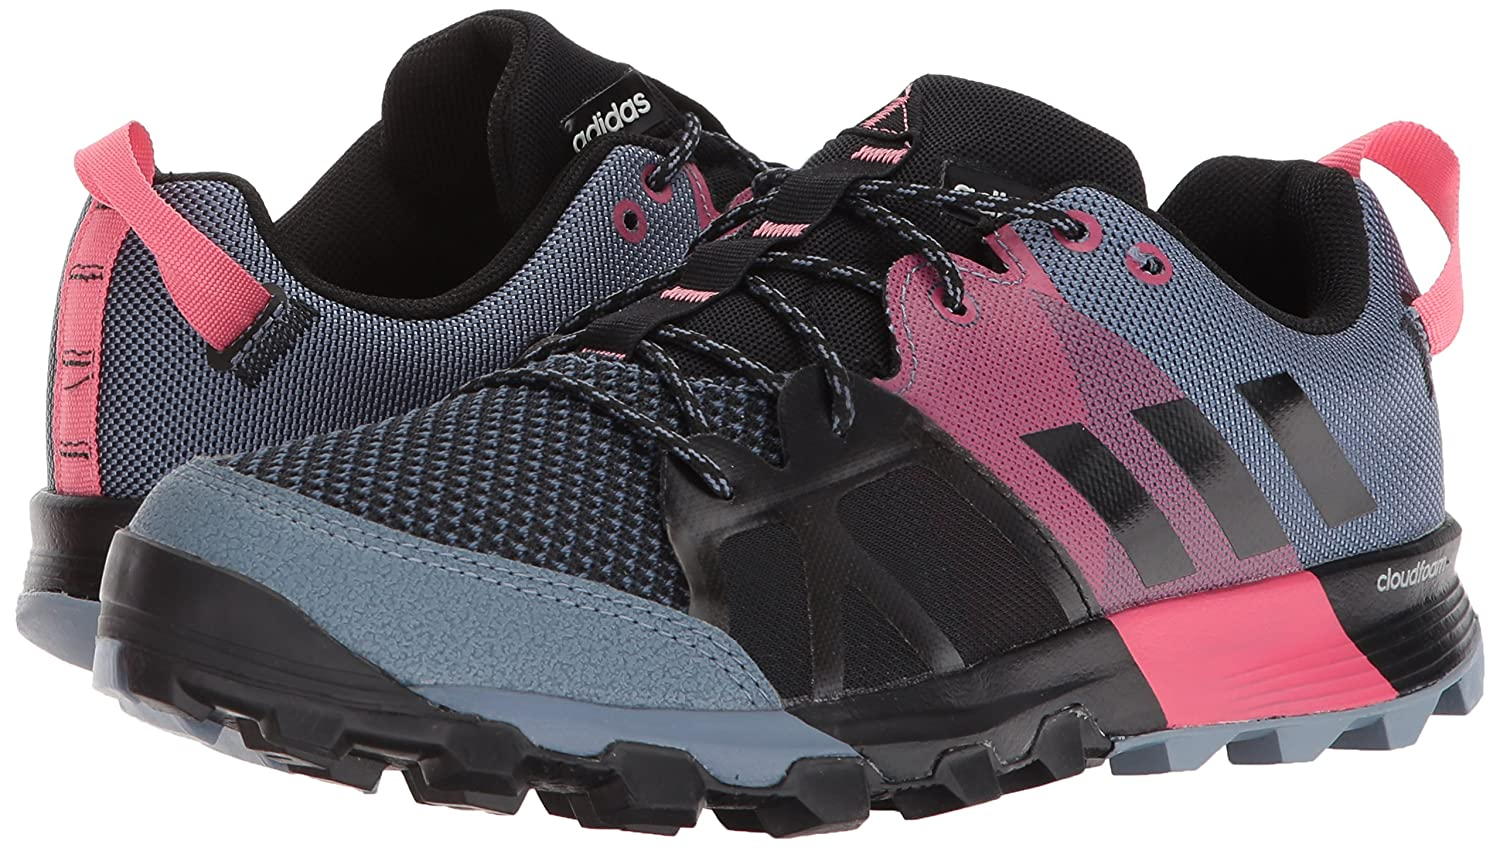 adidas outdoor Women's Kanadia 8.1 W 7.5 Trail Running Shoe B072YV5P13 7.5 W M US|Raw Steel/Off White/Real Pink 6423c4